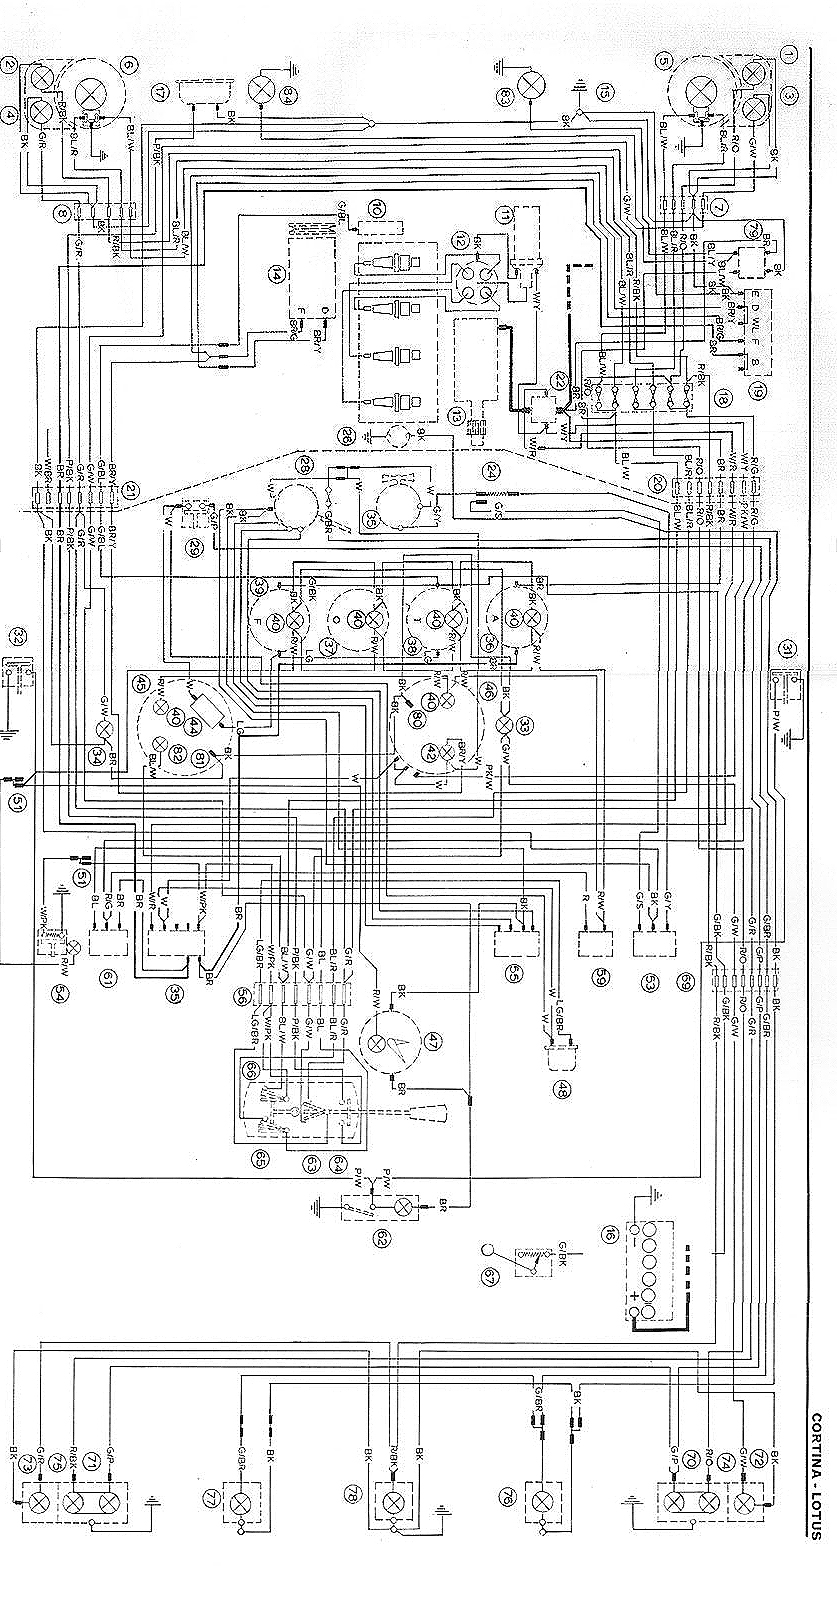 lhdmk2  Switch Light Wiring Diagram on double pole, outlet combo, electrical outlet, neutral wire, door dome, for single,